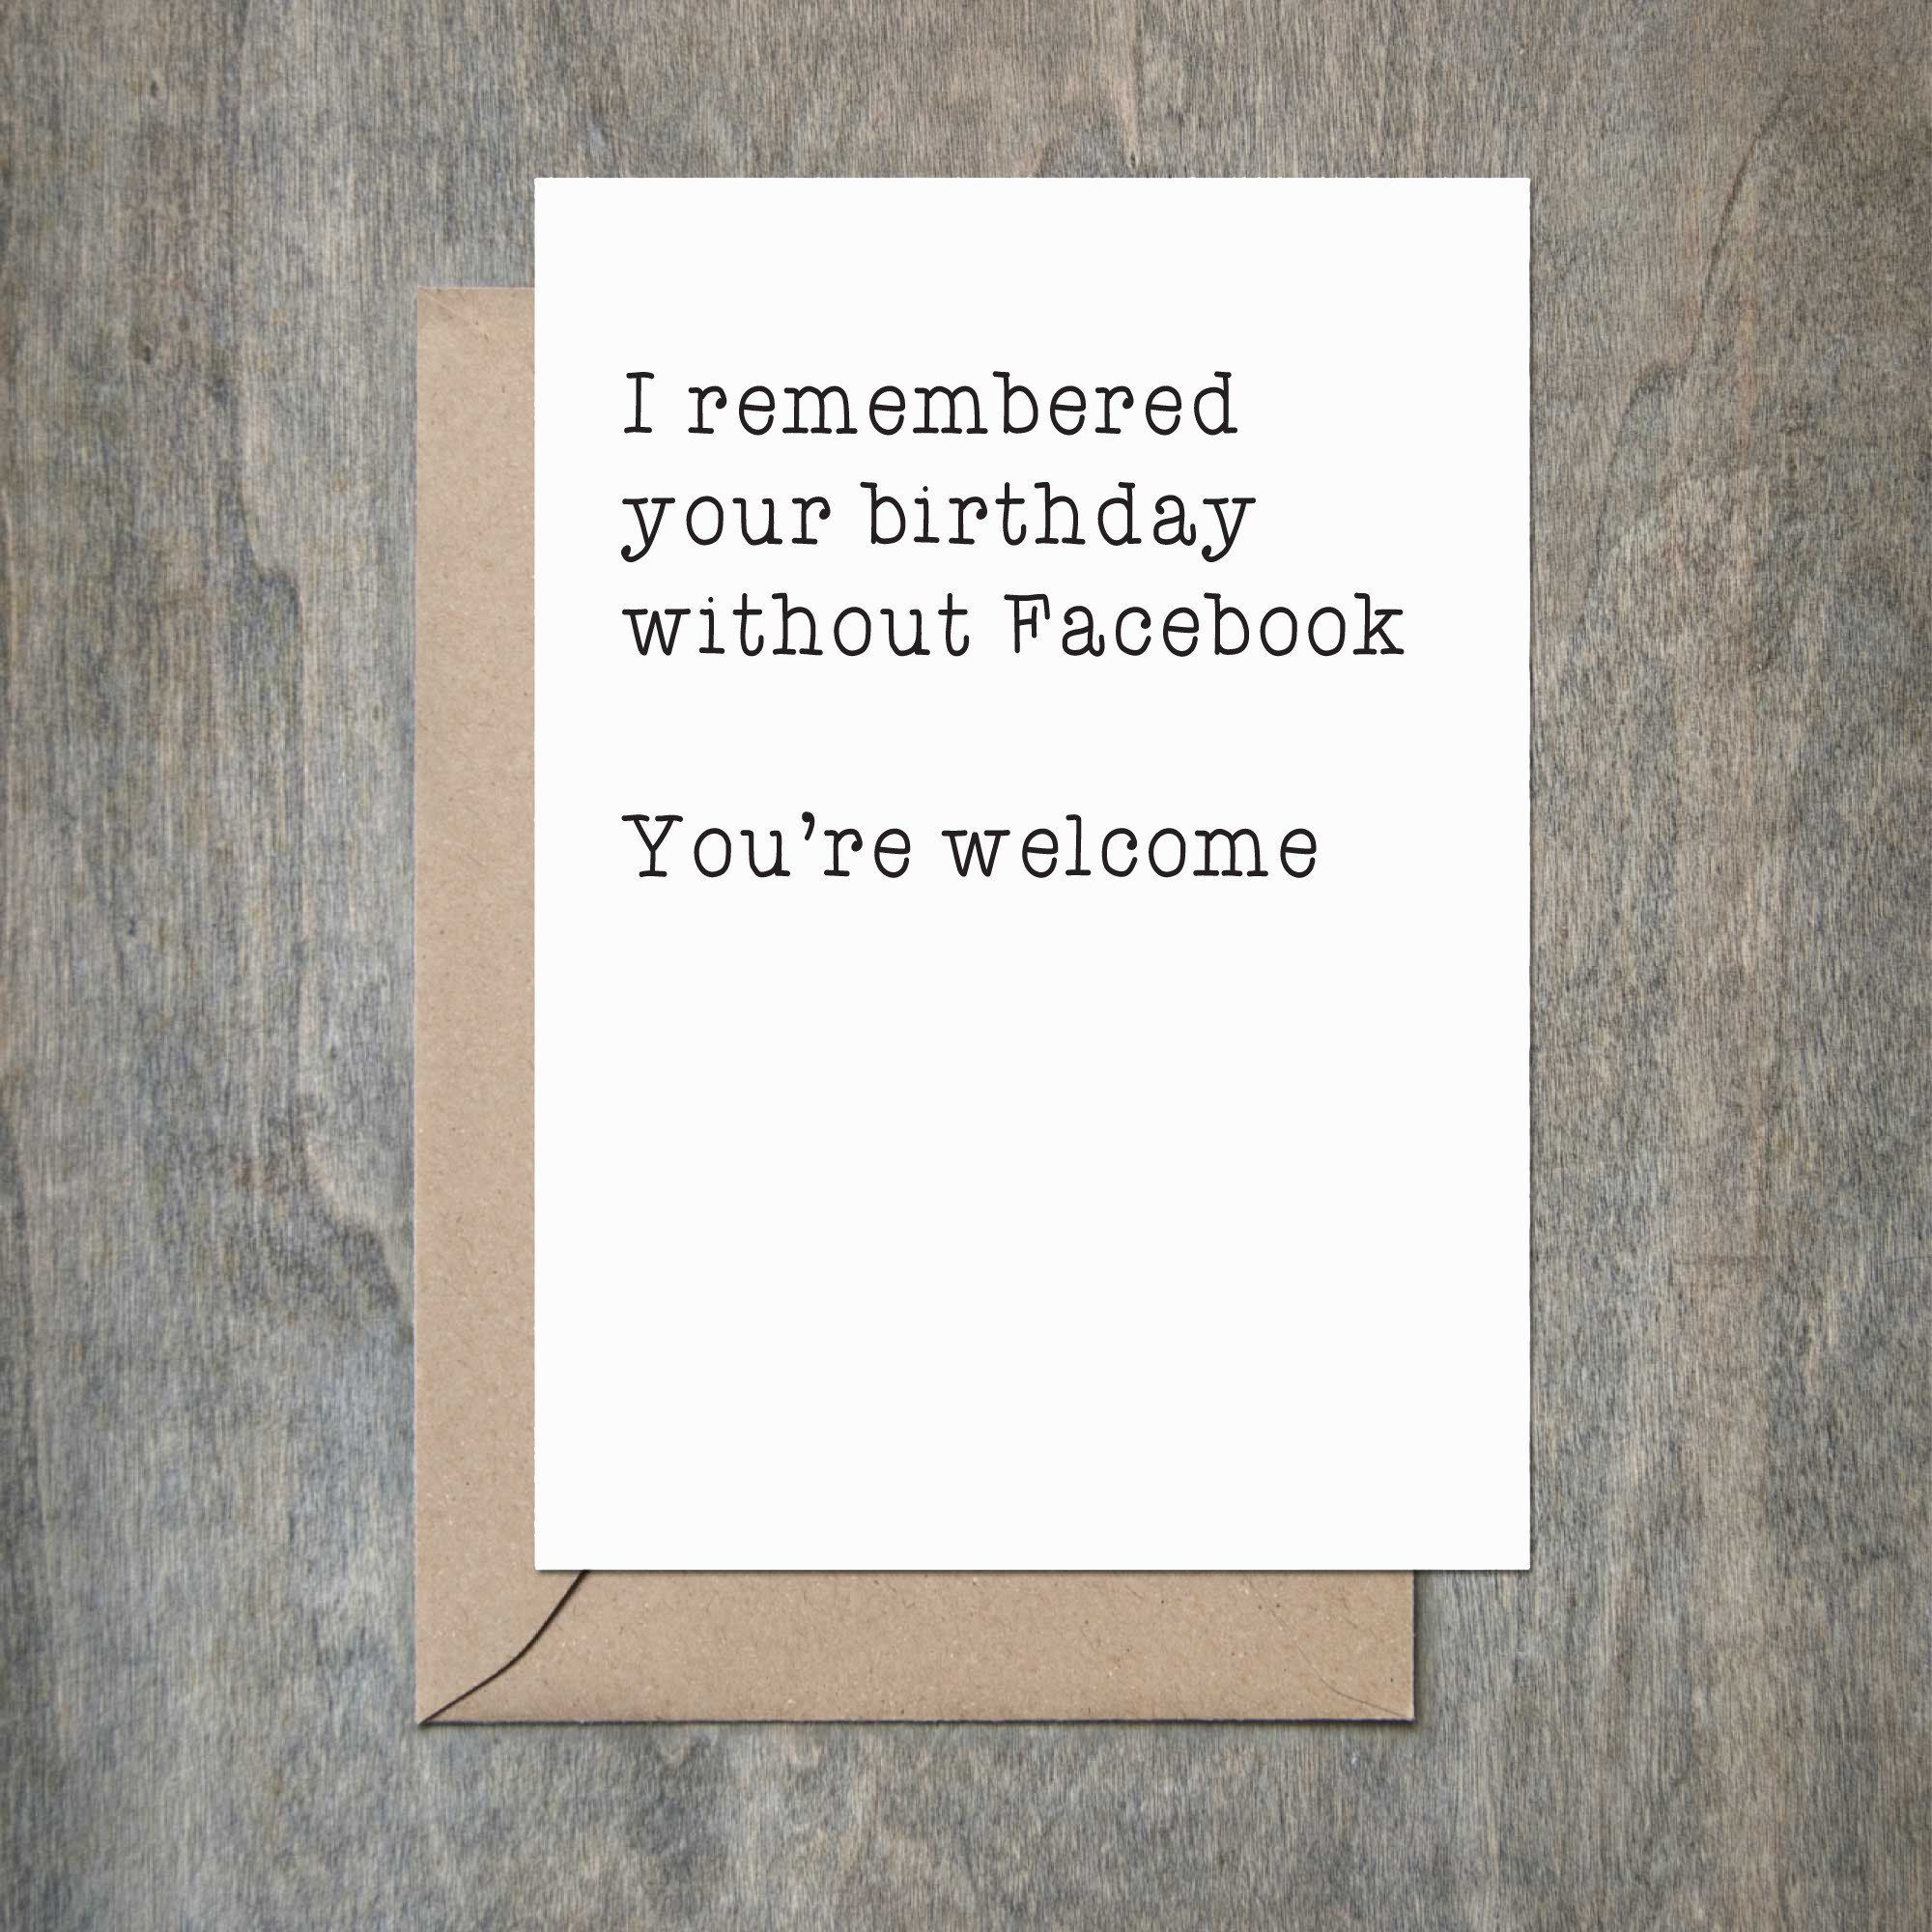 Remembered birthday without facebook birthday card birthdays remembered birthday without facebook birthday card bookmarktalkfo Images